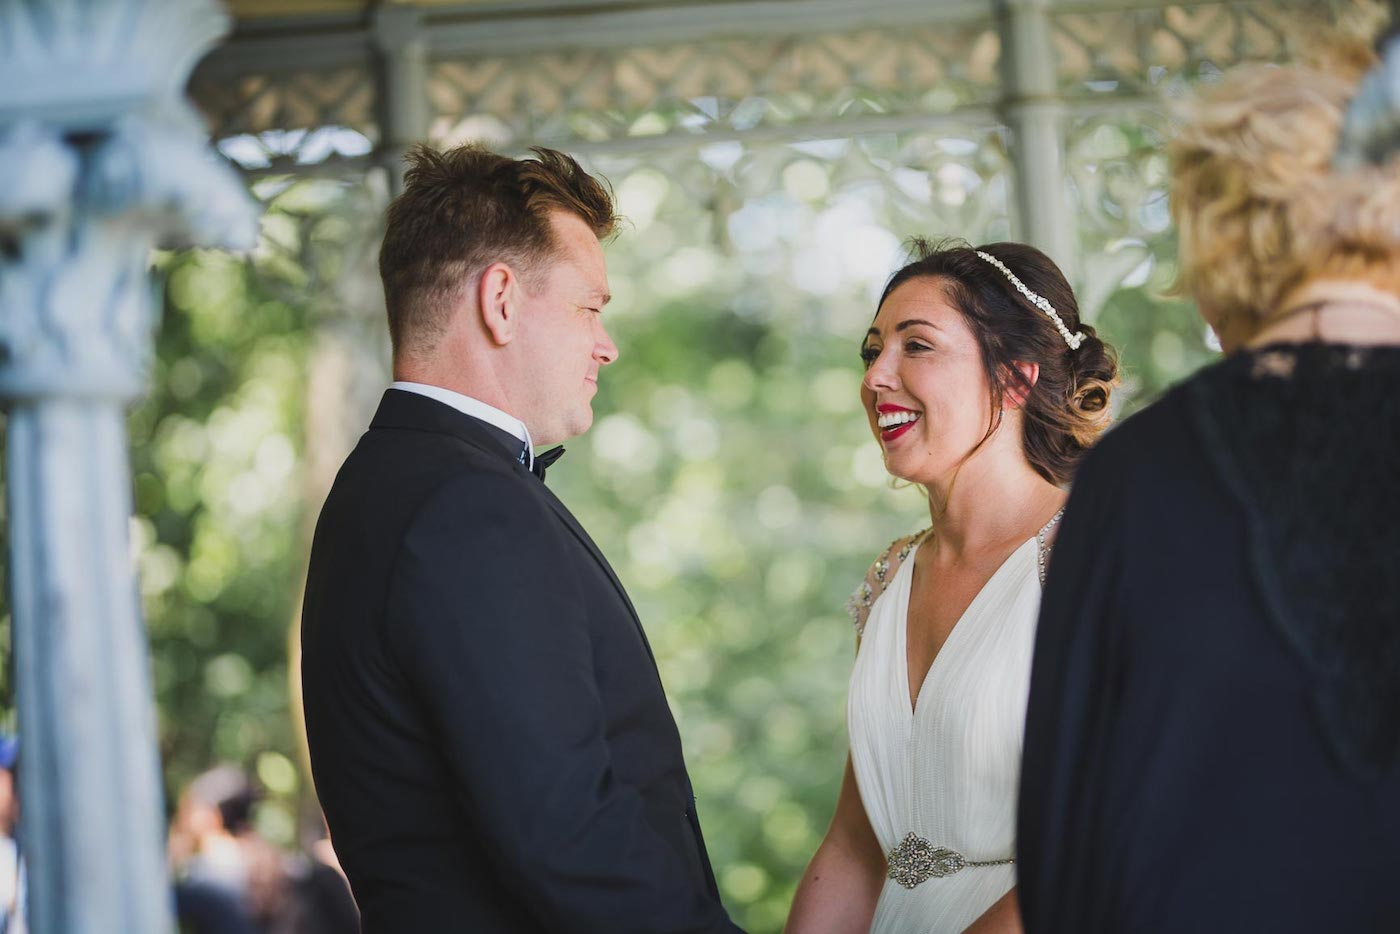 Weddings by Hanel - 5.30.18 - Tyne & James Ladies' Pavilion Elopement - 16